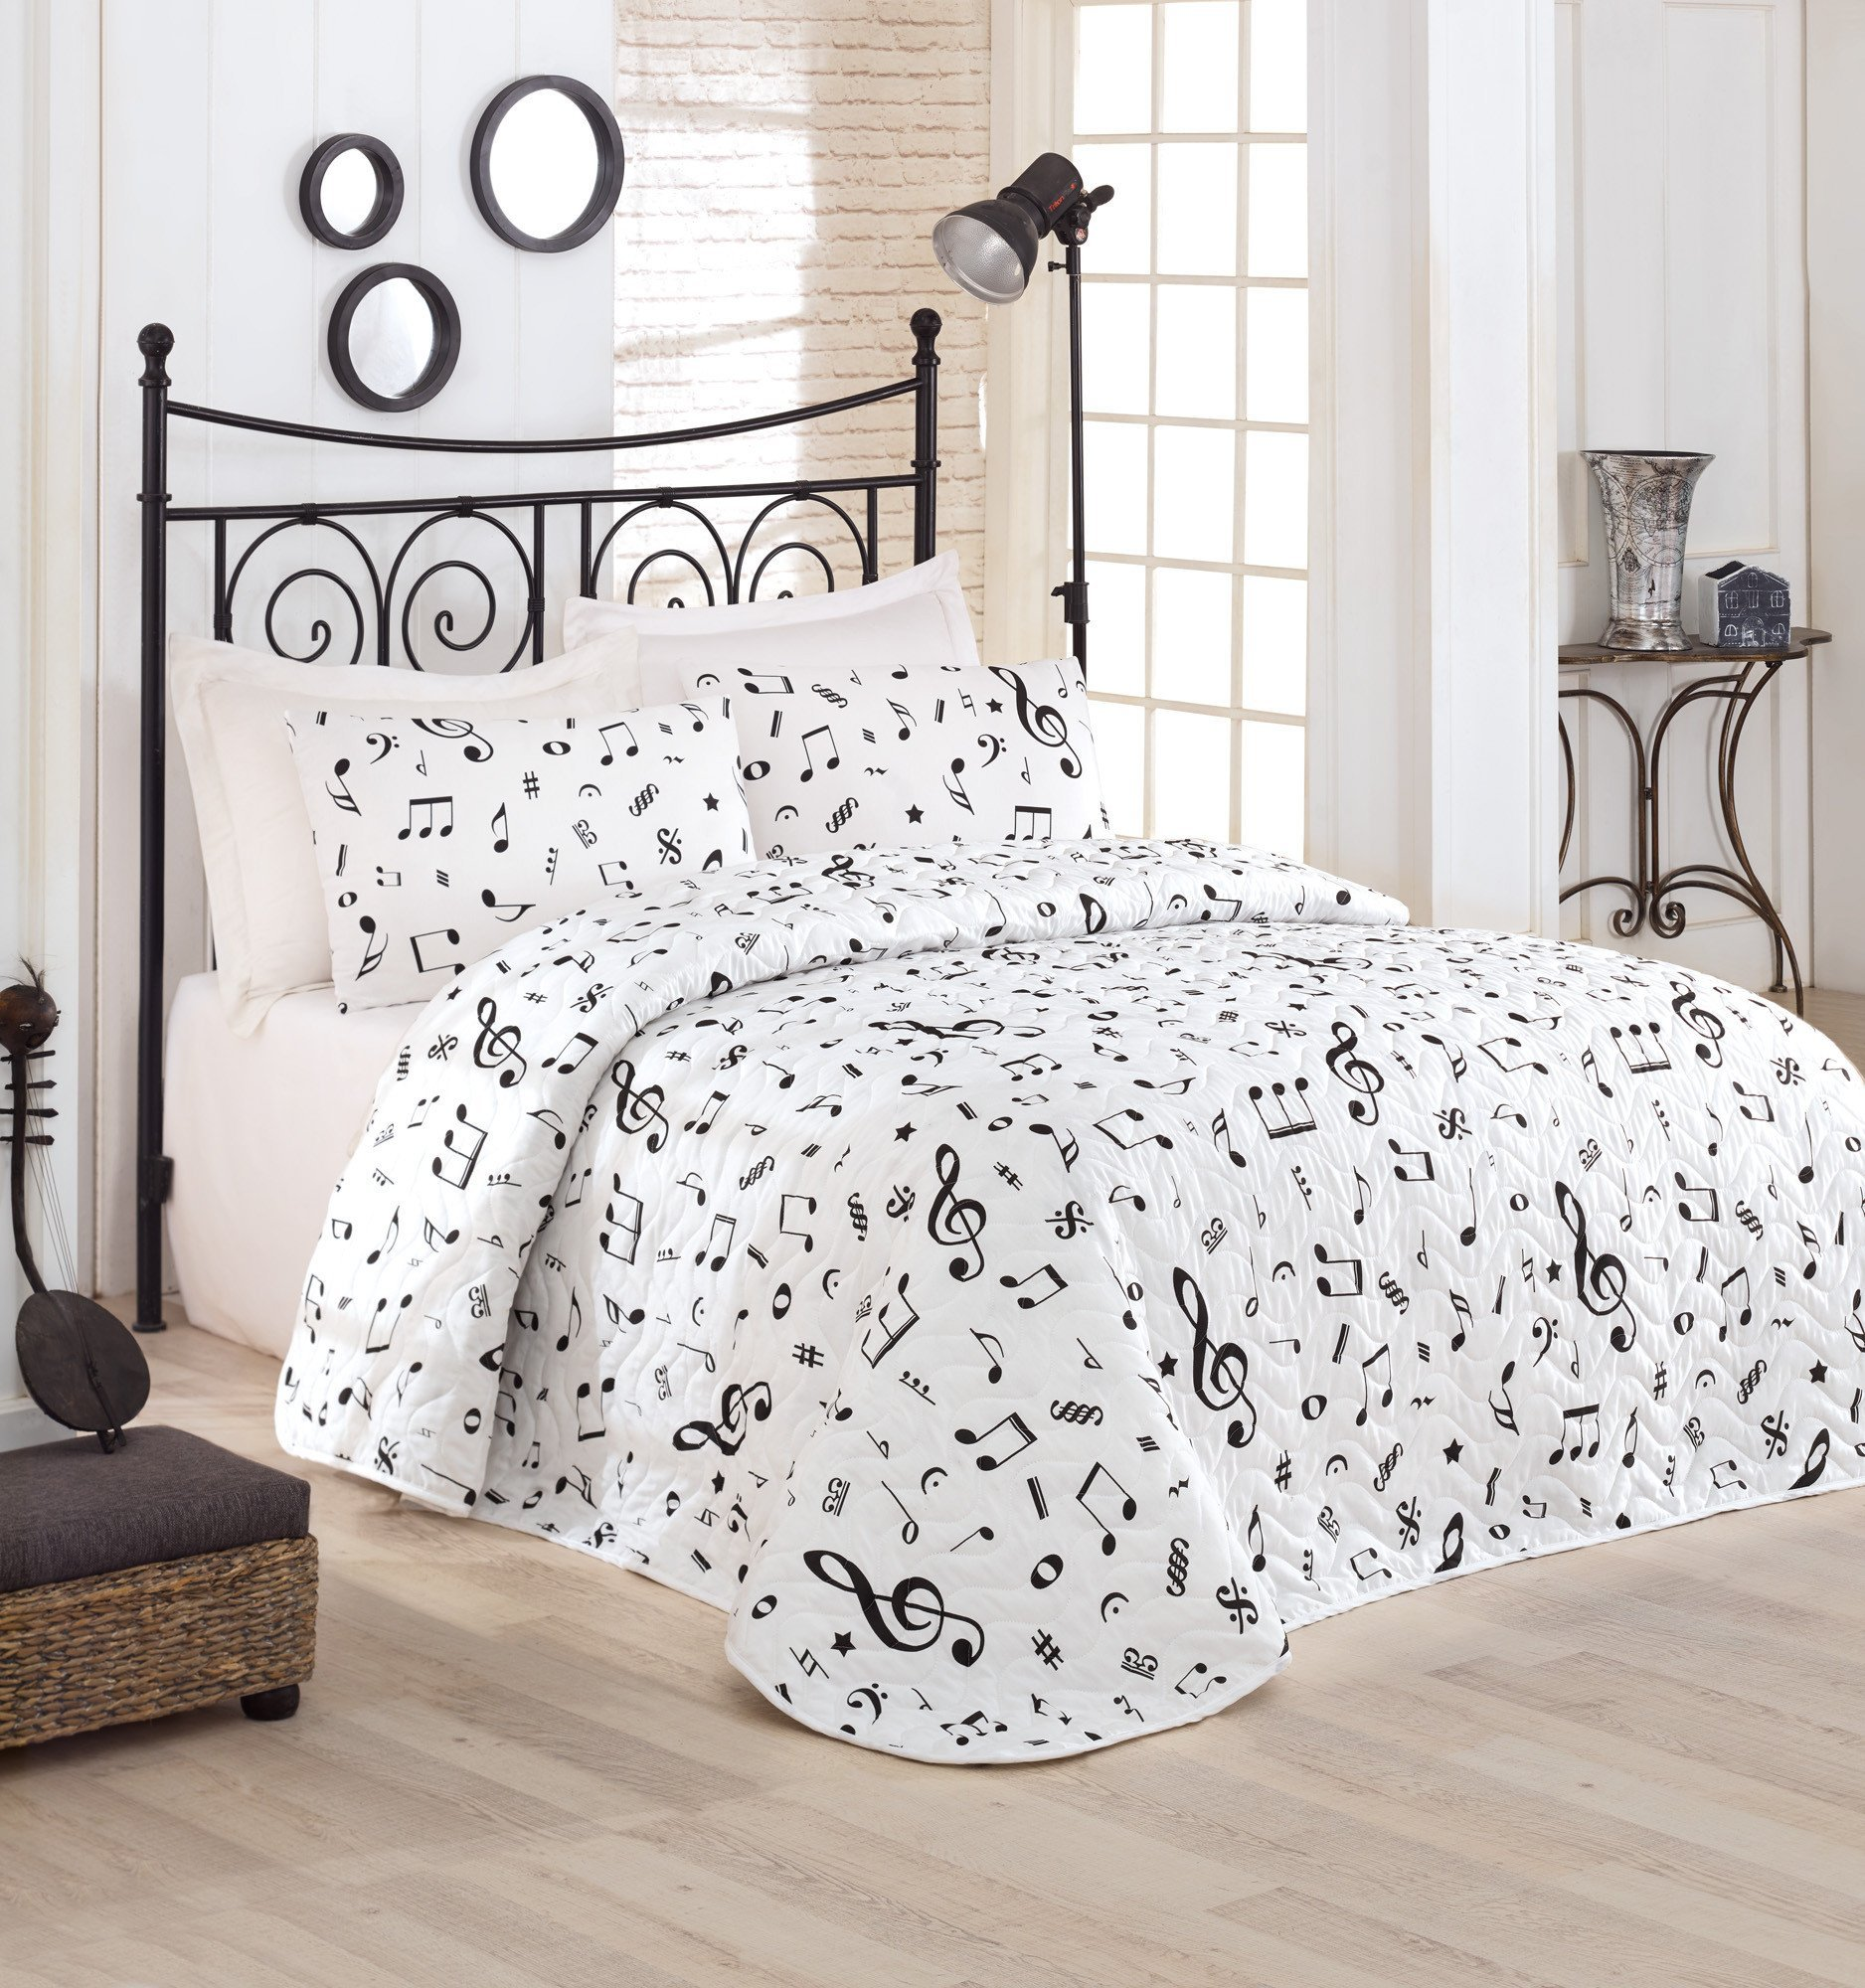 LaModaHome Luxury Soft Colored Bedroom Bedding 65% Cotton 35% Polyester Quilted Cover (Padded) 100% Fiber Filling Music Note Dance Party Art Black and White